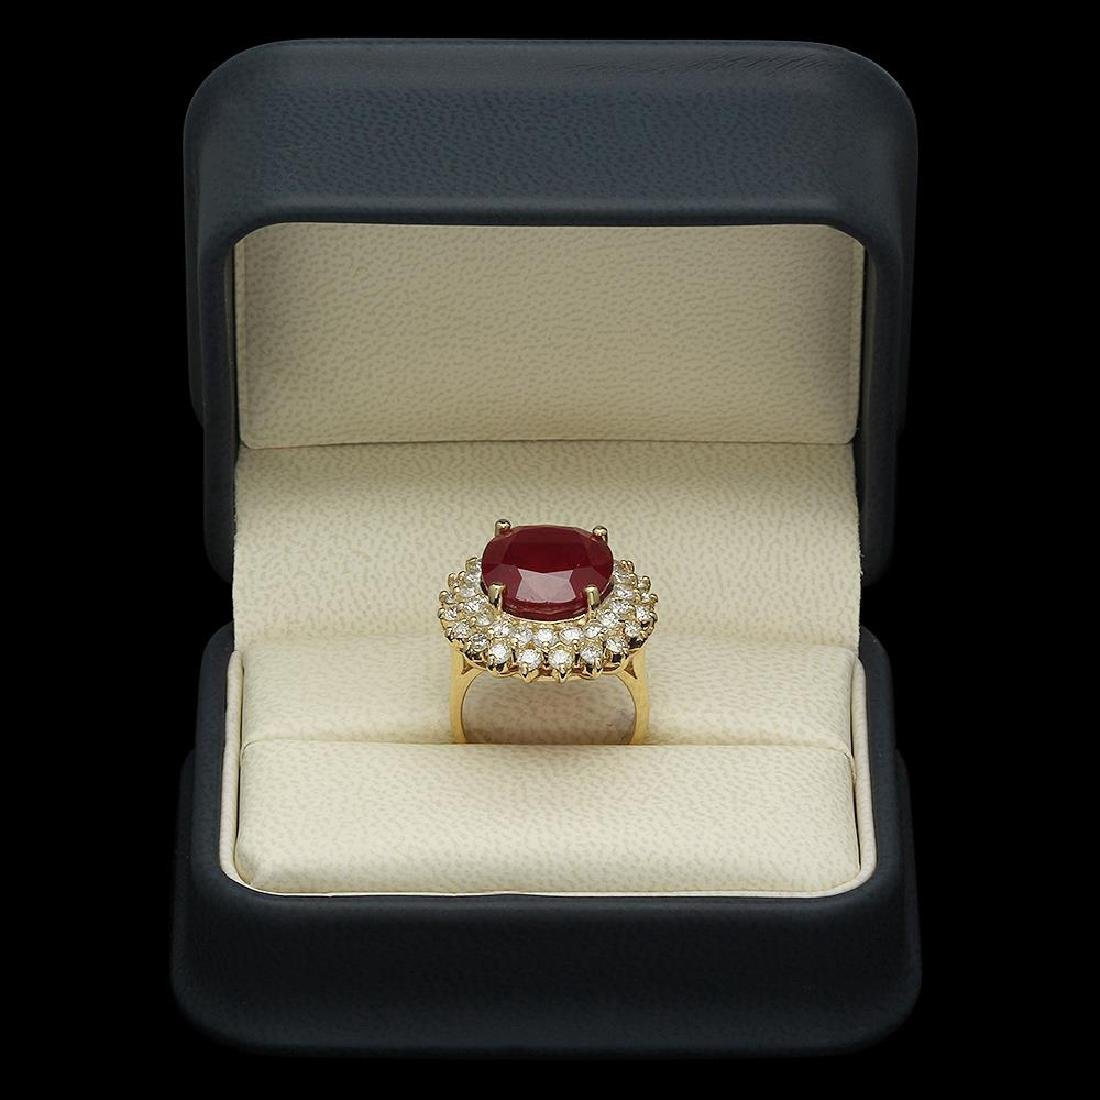 14K Gold 14.38ct Ruby 2.38ct Diamond Ring - 4